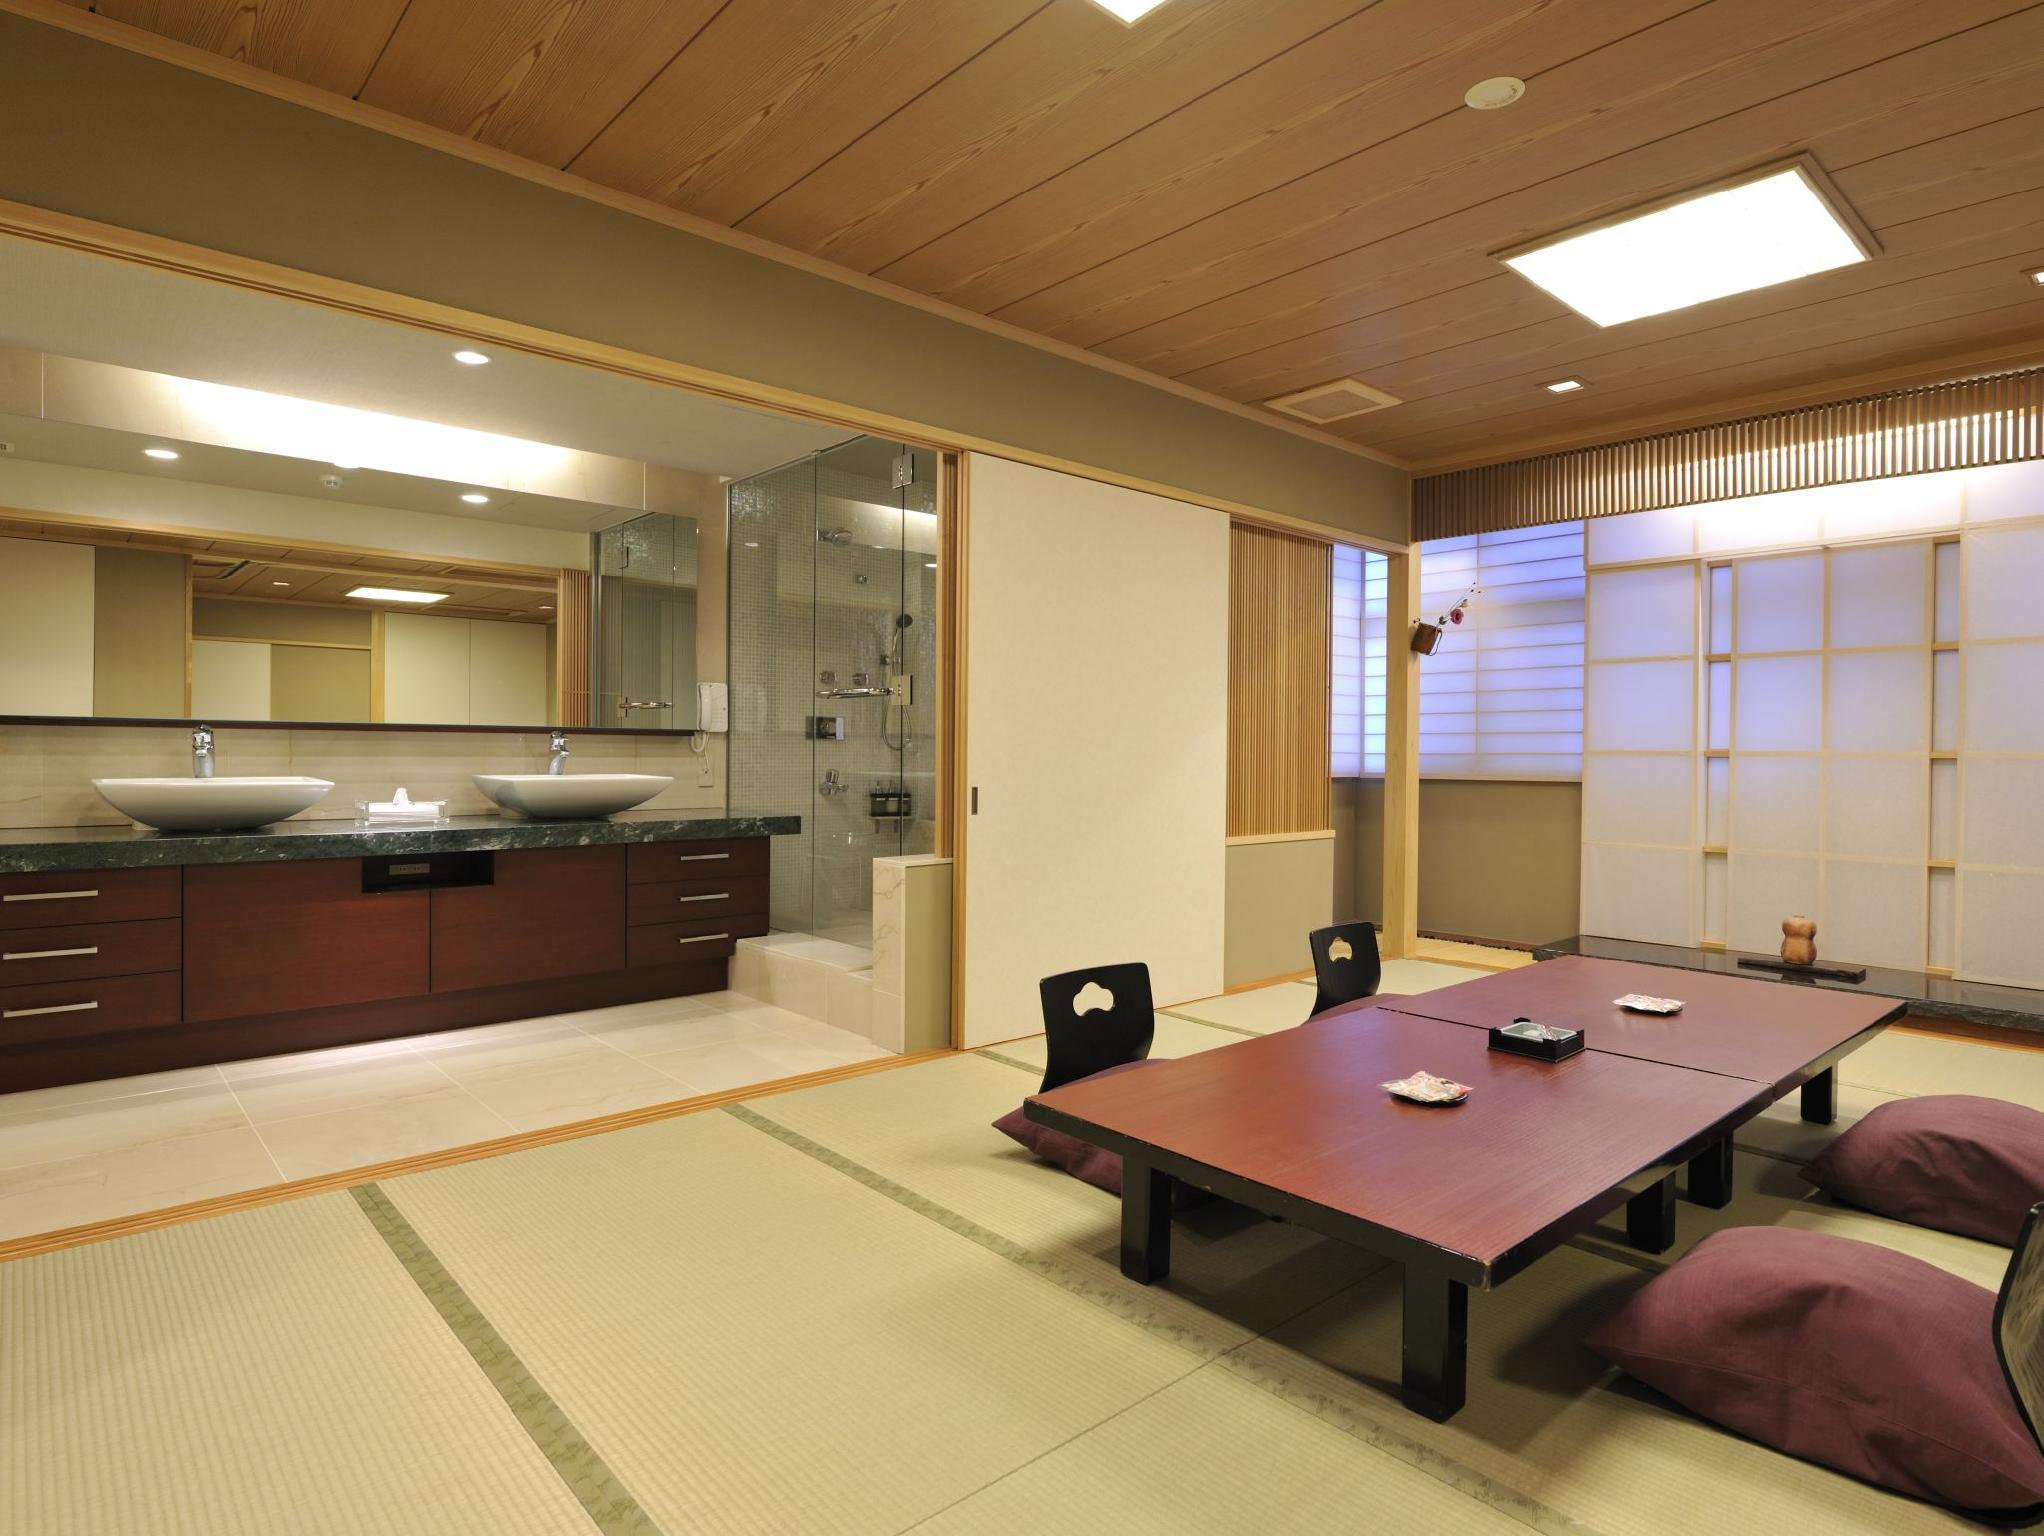 奢華現代日式家庭房 - 可住4人/有2間衛浴 (Luxury Modern Japanese Style Family Room for 4 People with 2 Bathrooms)